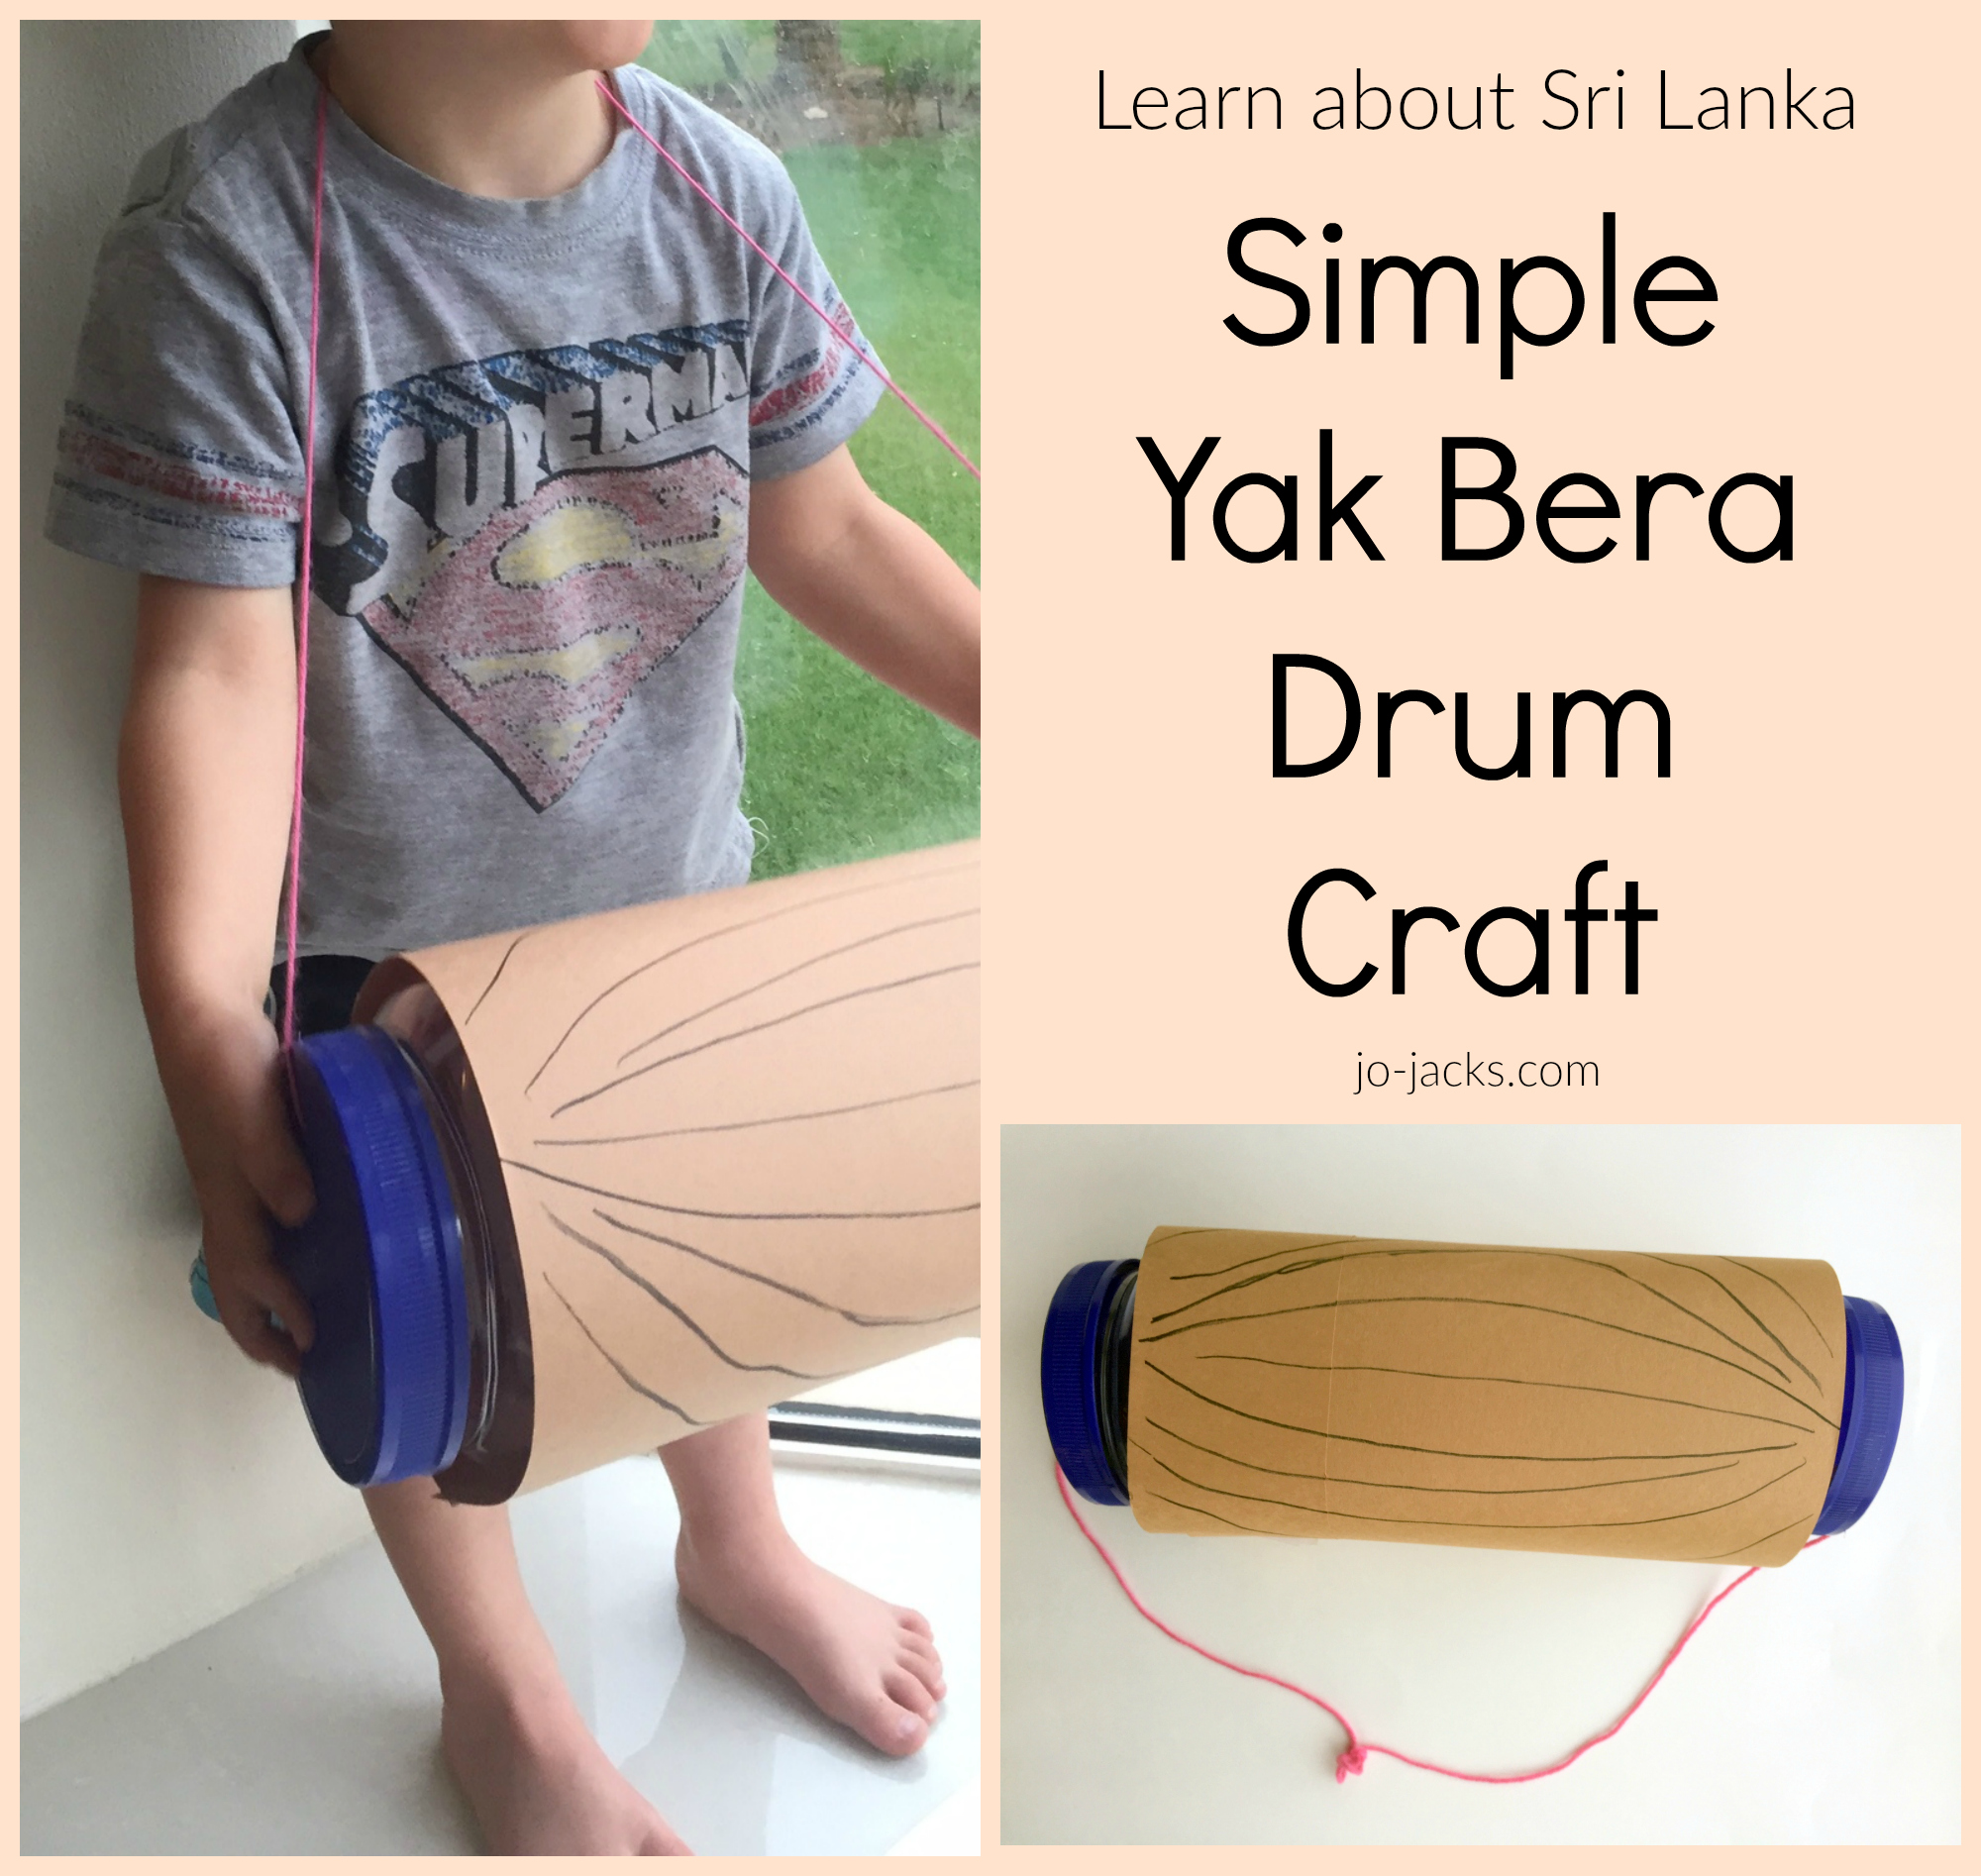 Yak Bera drum craft Sri Lanka crafts